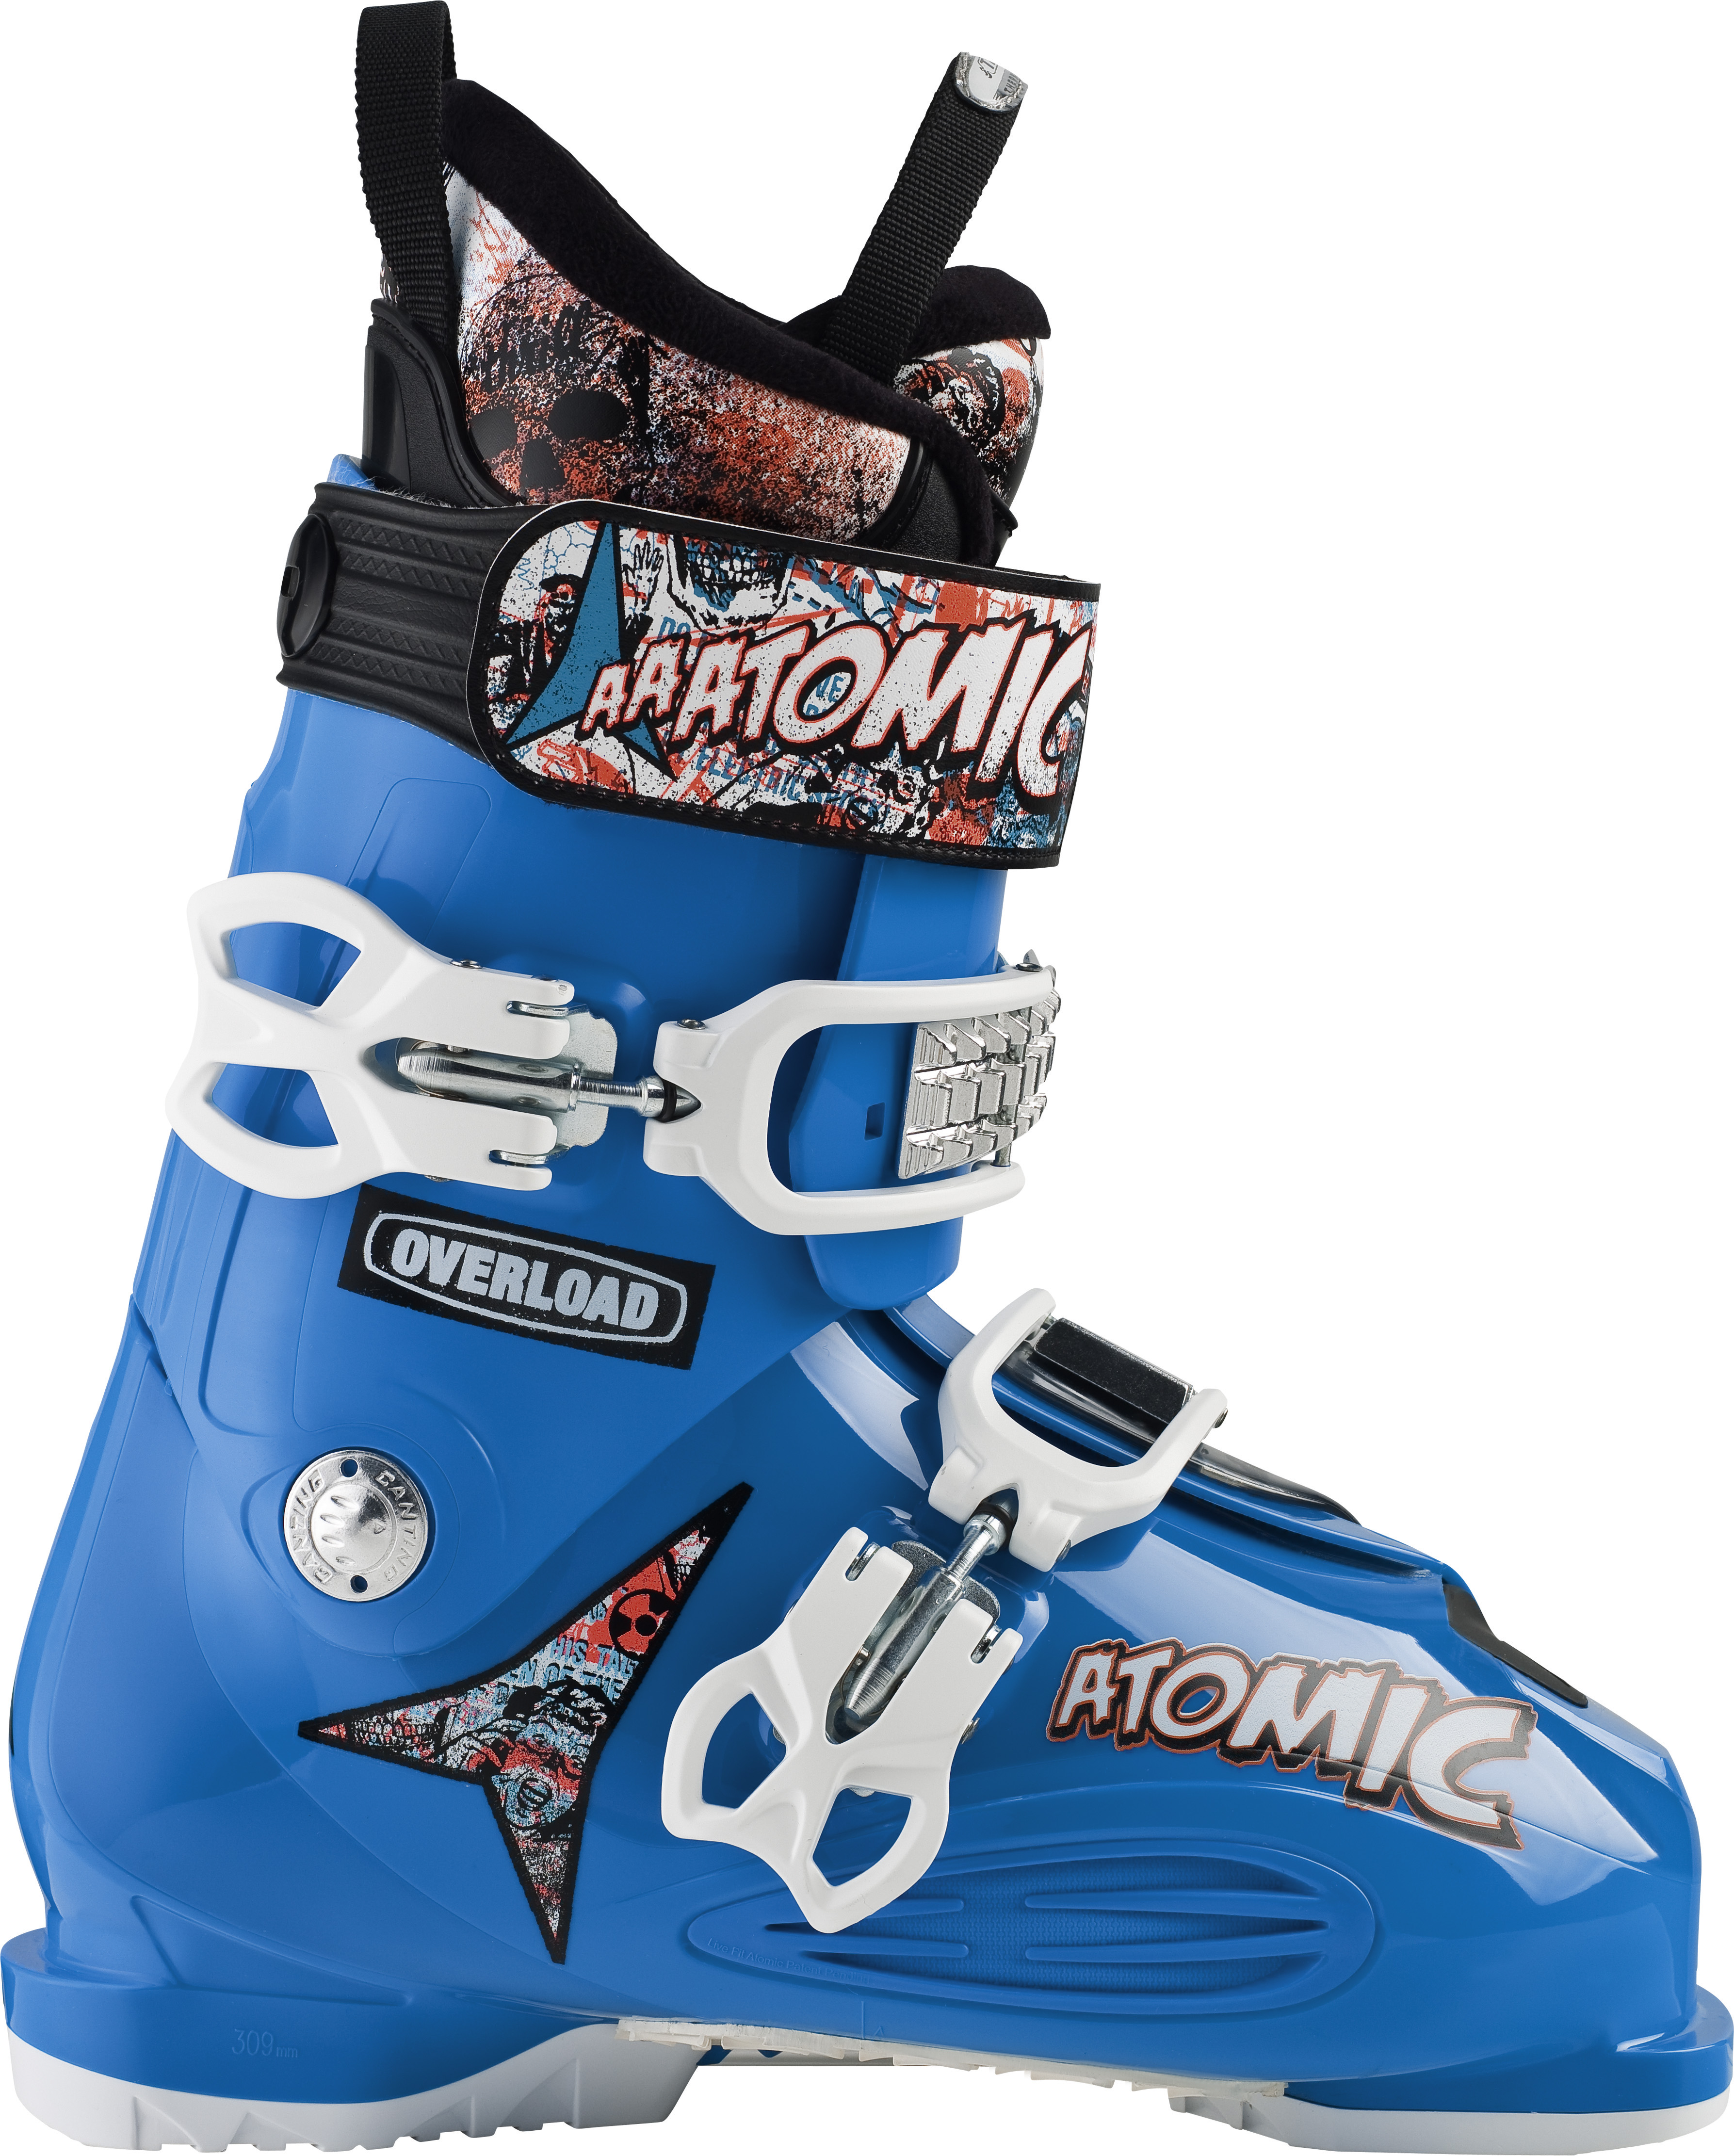 Ski Key Features of the Atomic Overload Reactor Ski Boots: 100 Flex Mega Buckle 45mm Strap ASY Pro Shockilla Liner - $258.95